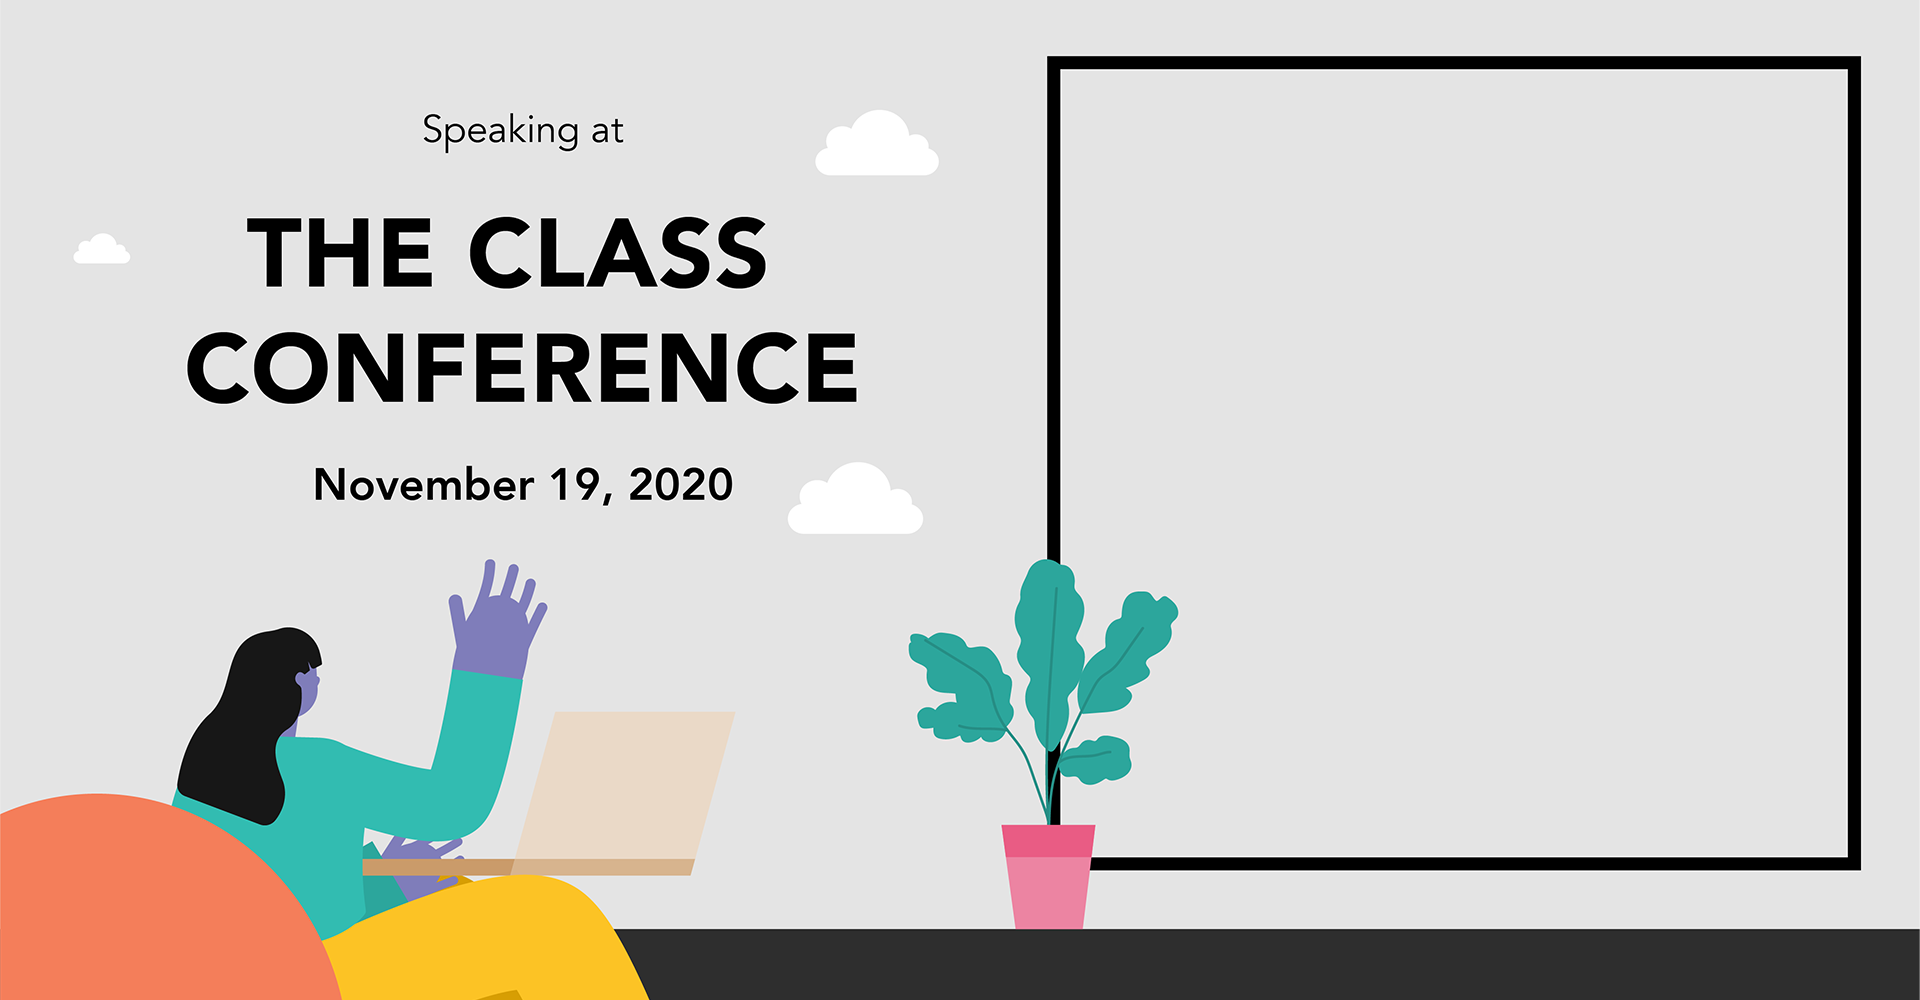 The Class Conference social media template for speakers with placeholder for photo by SPX